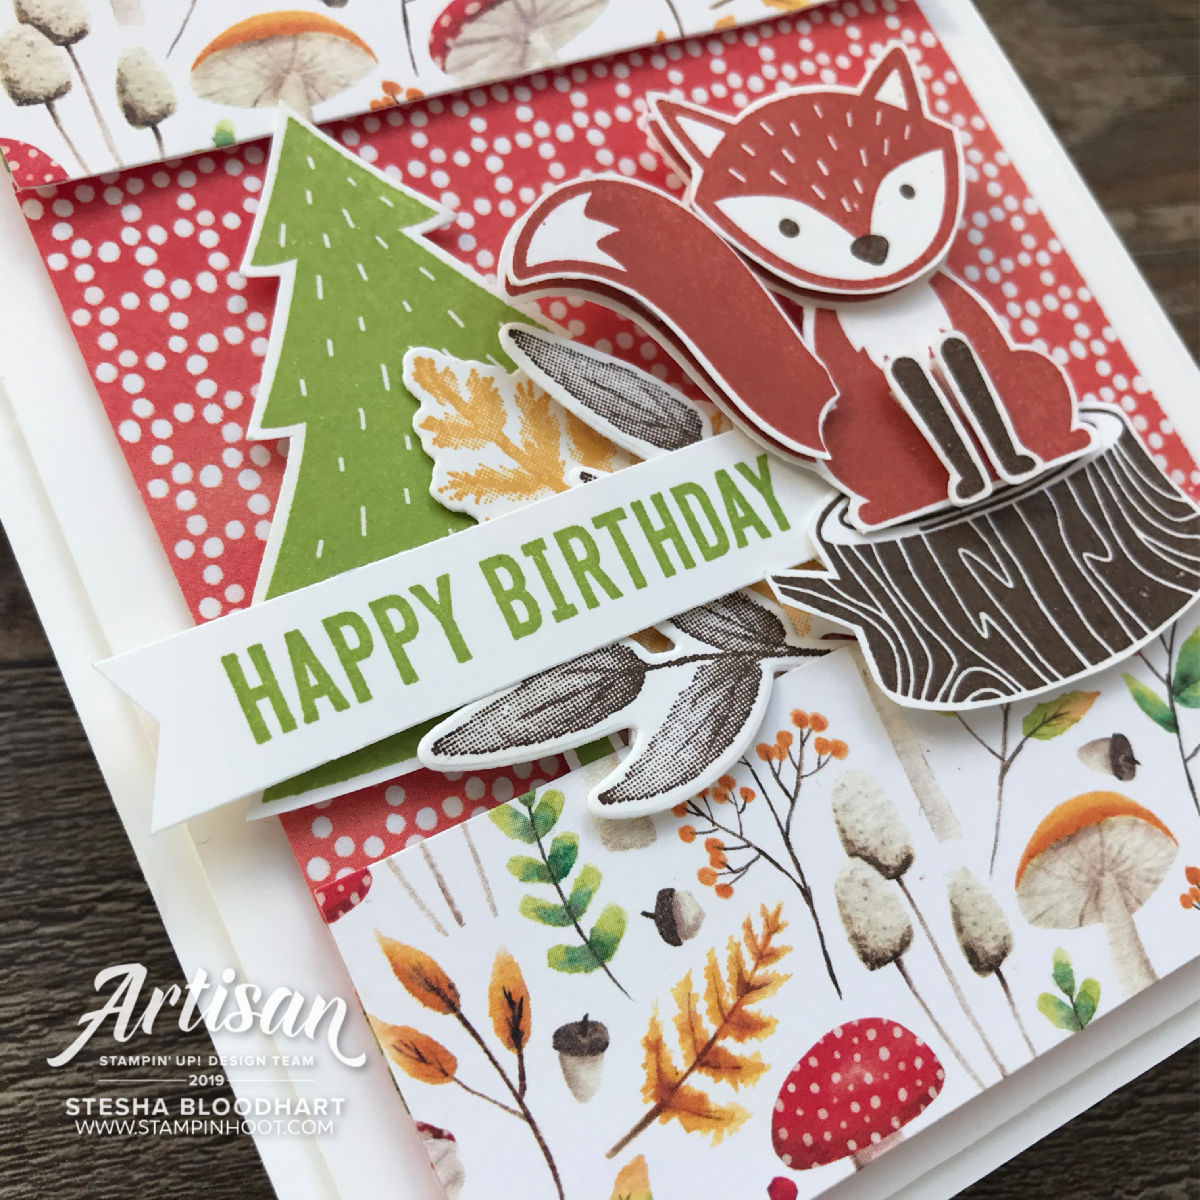 #tgifc202 sketch challenge using Stampin' Up! Painted Seasons Bundle, Foxy Friends Stamp Set. Four Seasons Framelits Dies, & Itty Bitty Birthdays, Stesha Bloodhart, Stampin' Hoot!